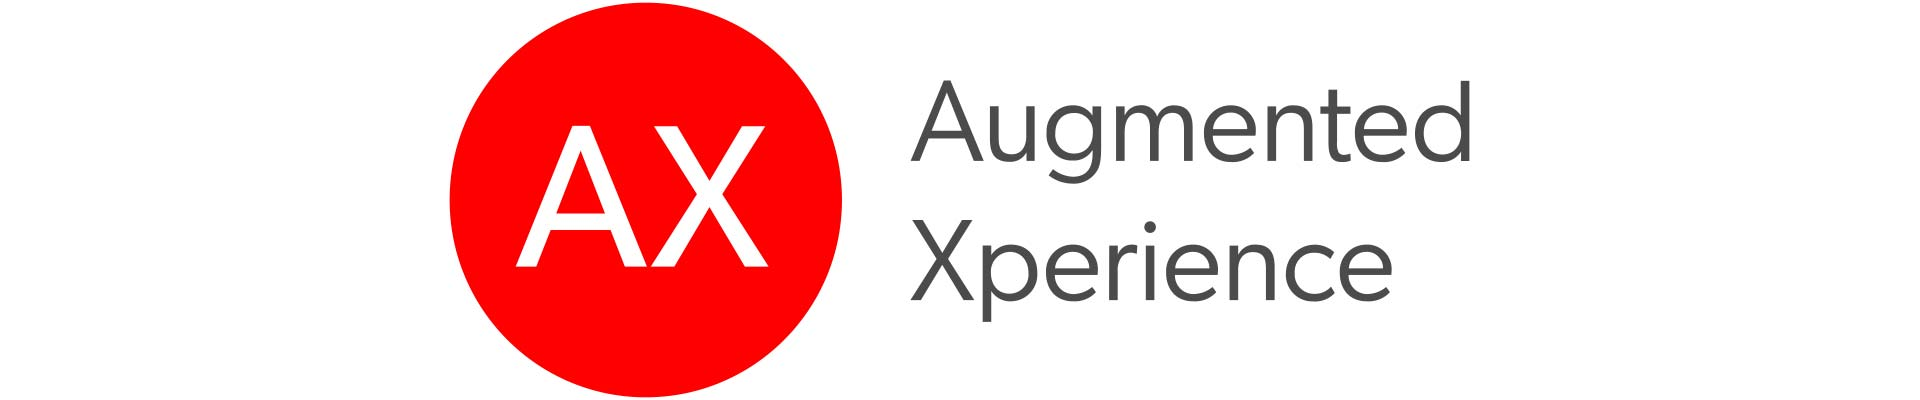 Signia Augmented Xperience